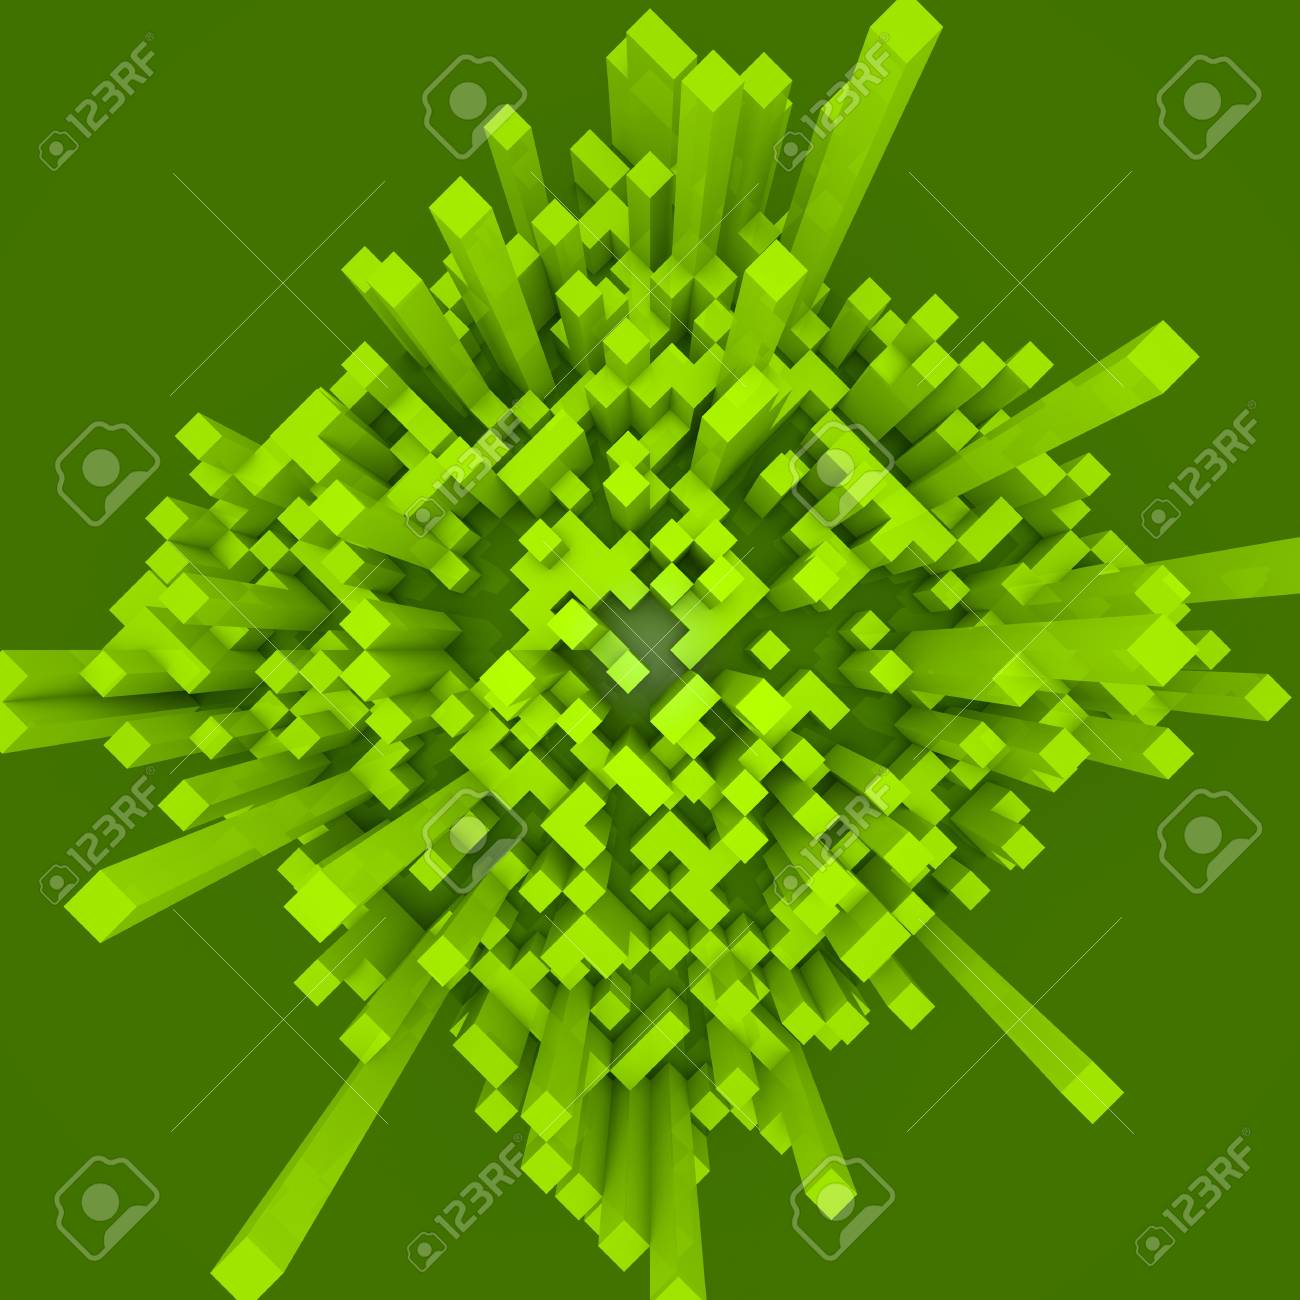 Abstract background with 3d cubes Stock Photo - 12819538